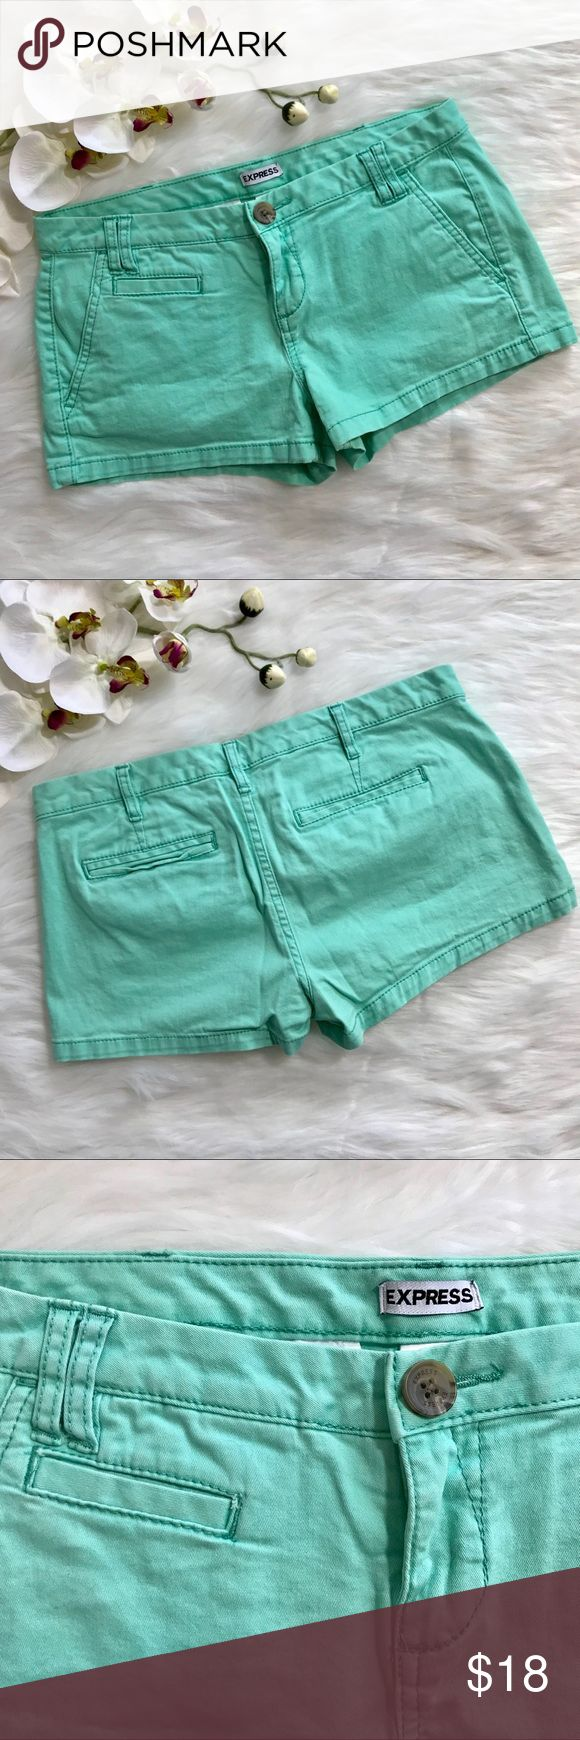 "EXPRESS MINT GREEN SHORTS - SIZE 2 Cute minty green chino shorts. Excellent condition - Worn only one time! Back pockets are real/working, but still tacked closed from the manufacturer. Approx. 15.5"" at waist, 1.75"" inseam, and 7.5"" rise. Stock photo included to show style. Please review other photos for actual item being sold. Express Shorts Jean Shorts"